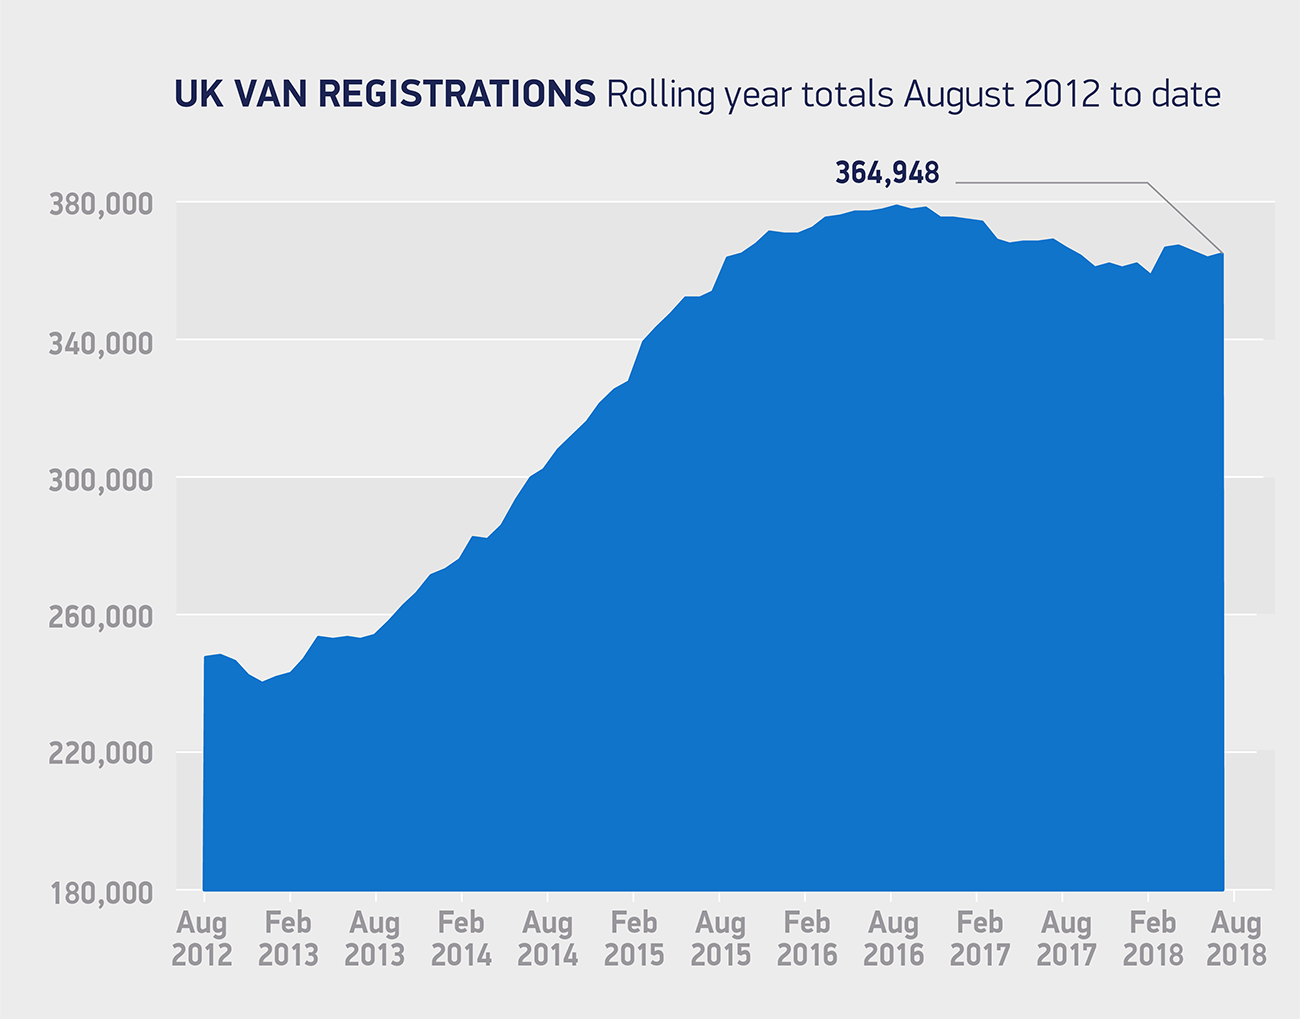 Van registrations rolling year totals Aug 2012 to-date 2018 chart